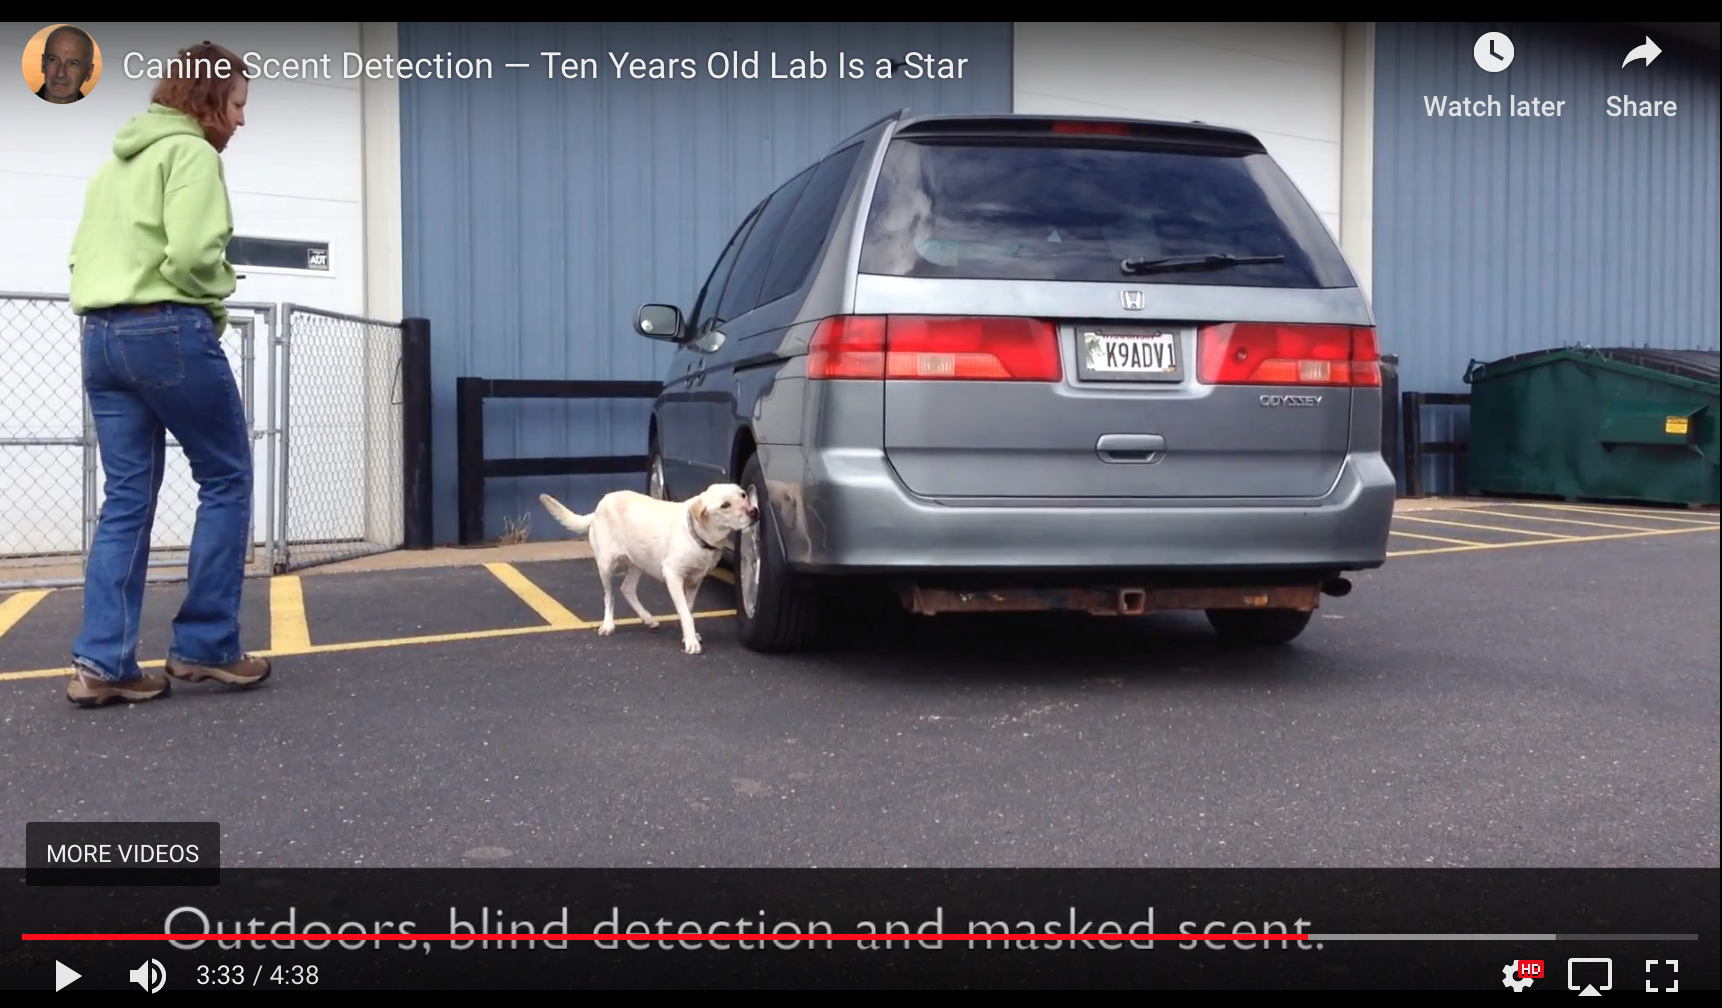 Canine Scent Detection — Ten Years Old Lab Is a Star